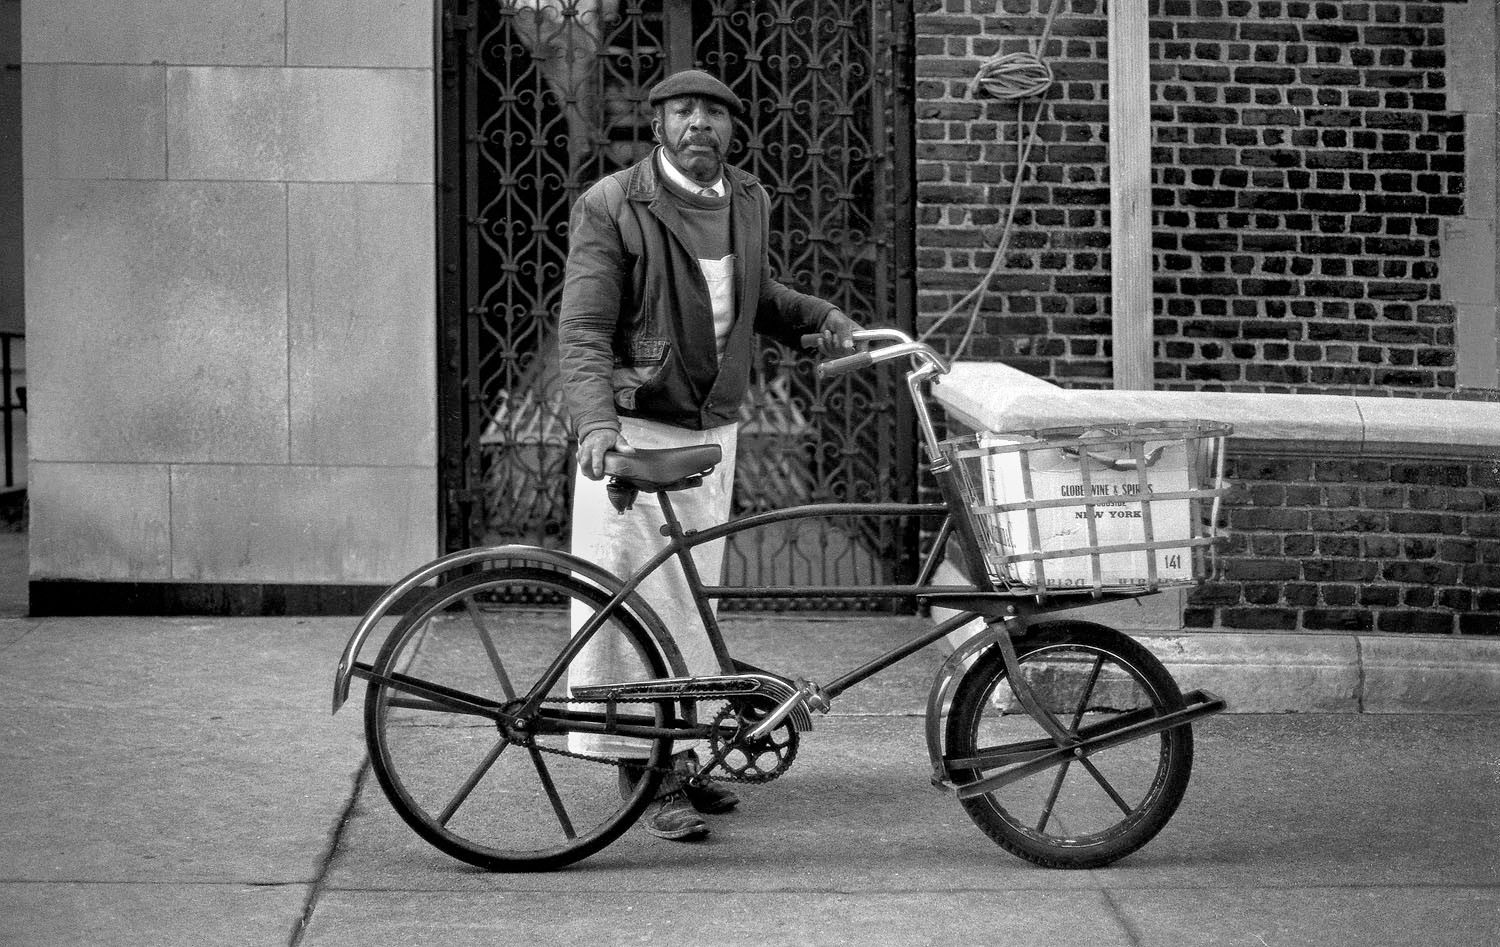 Bicycle Delivery Man